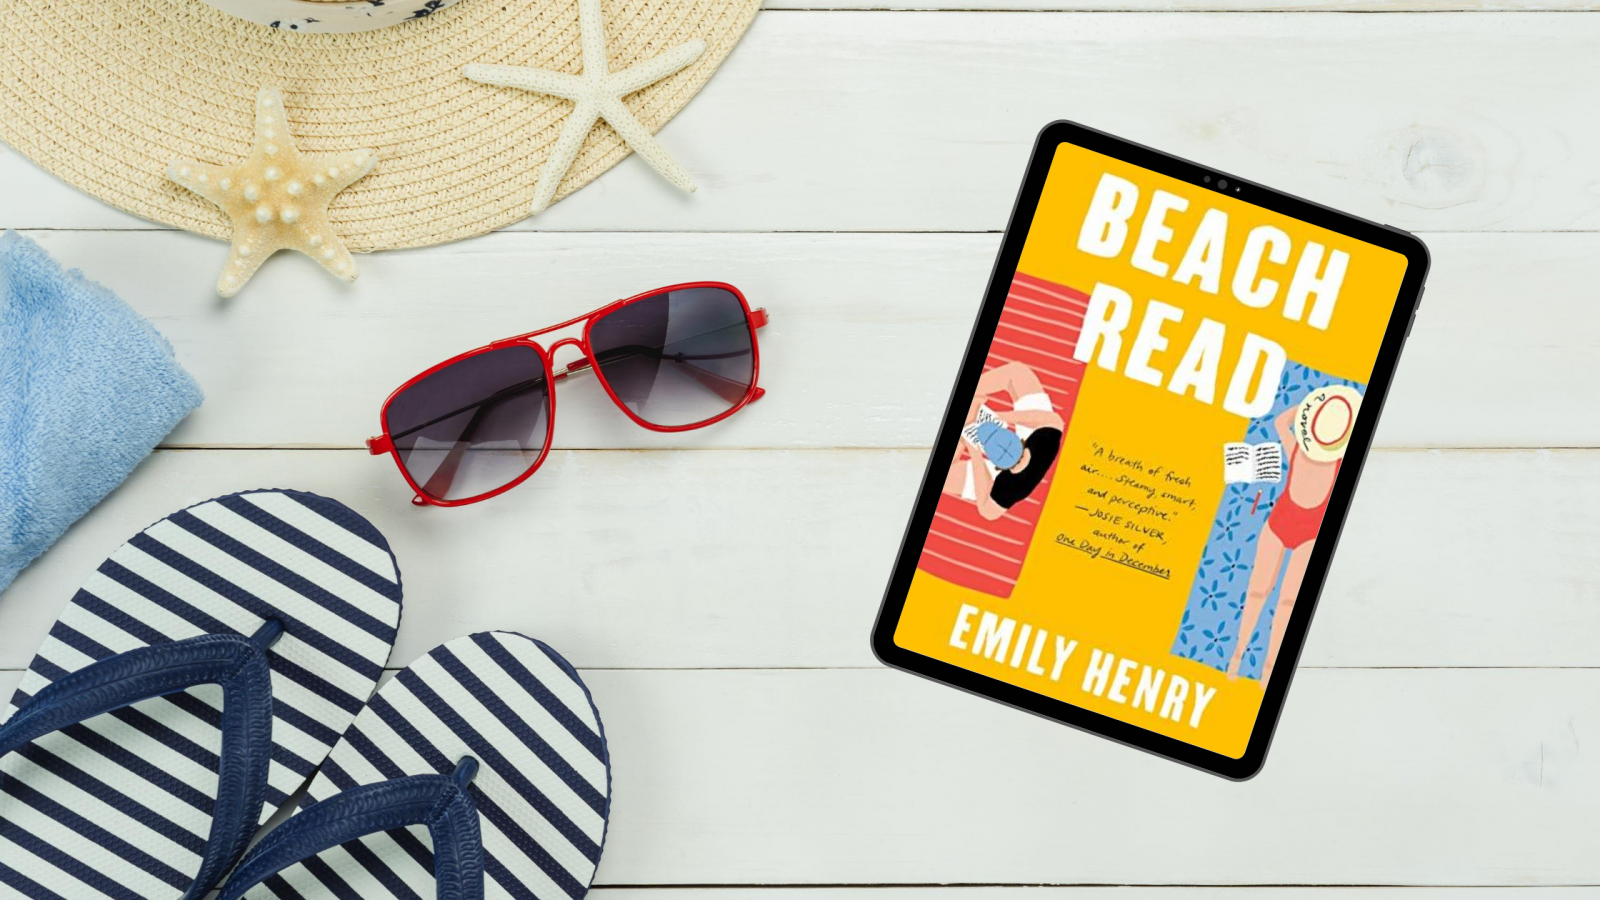 Beach Read book by Emily Henry in beachy setting